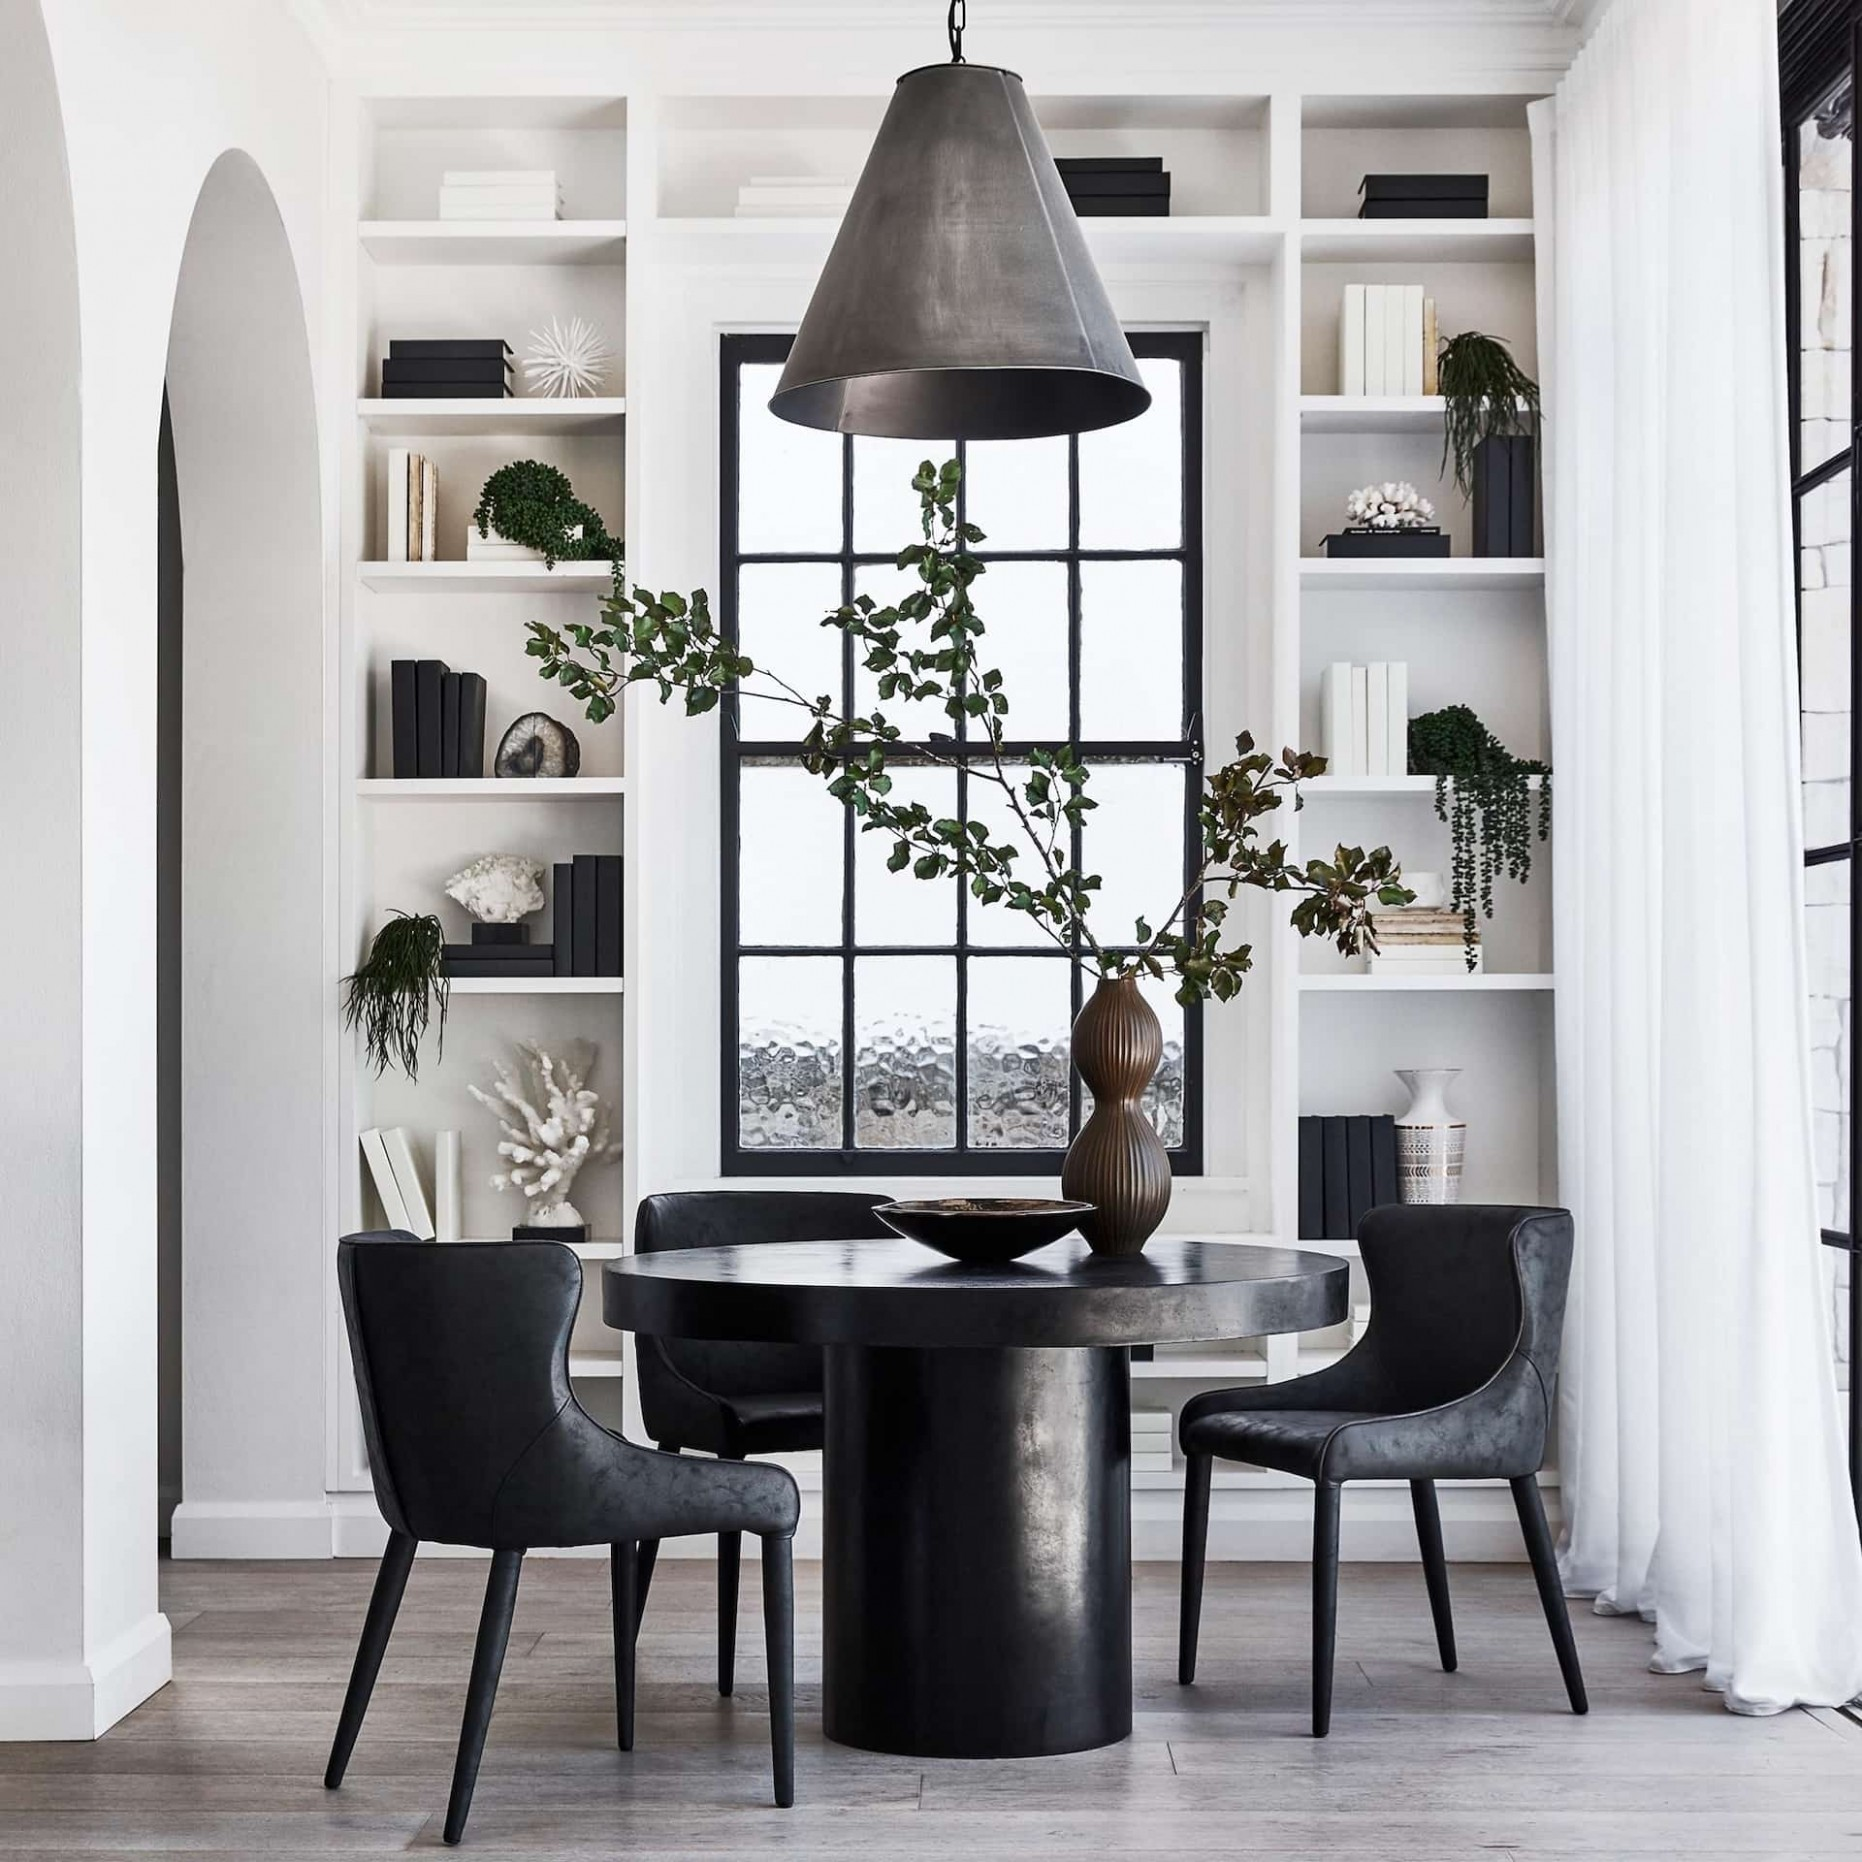 10 Must-Try Small Dining Room Decorating Ideas - TLC Interiors - Dining Room Ideas Round Table